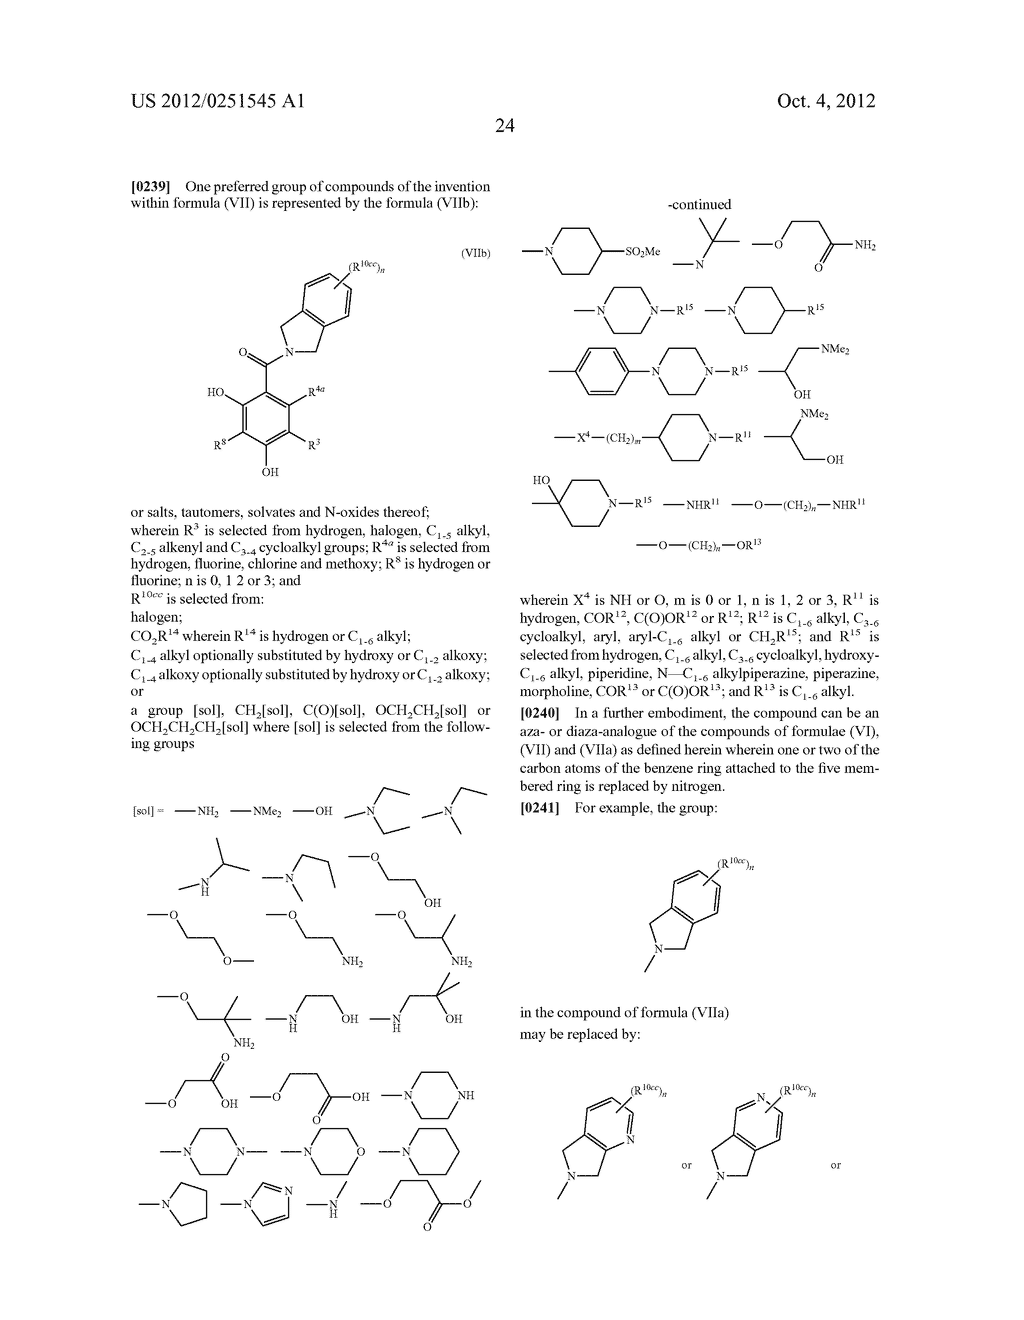 Therapeutic Combinations Of Hydroxybenzamide Derivatives As Inhibitors Of     HSP90 - diagram, schematic, and image 25